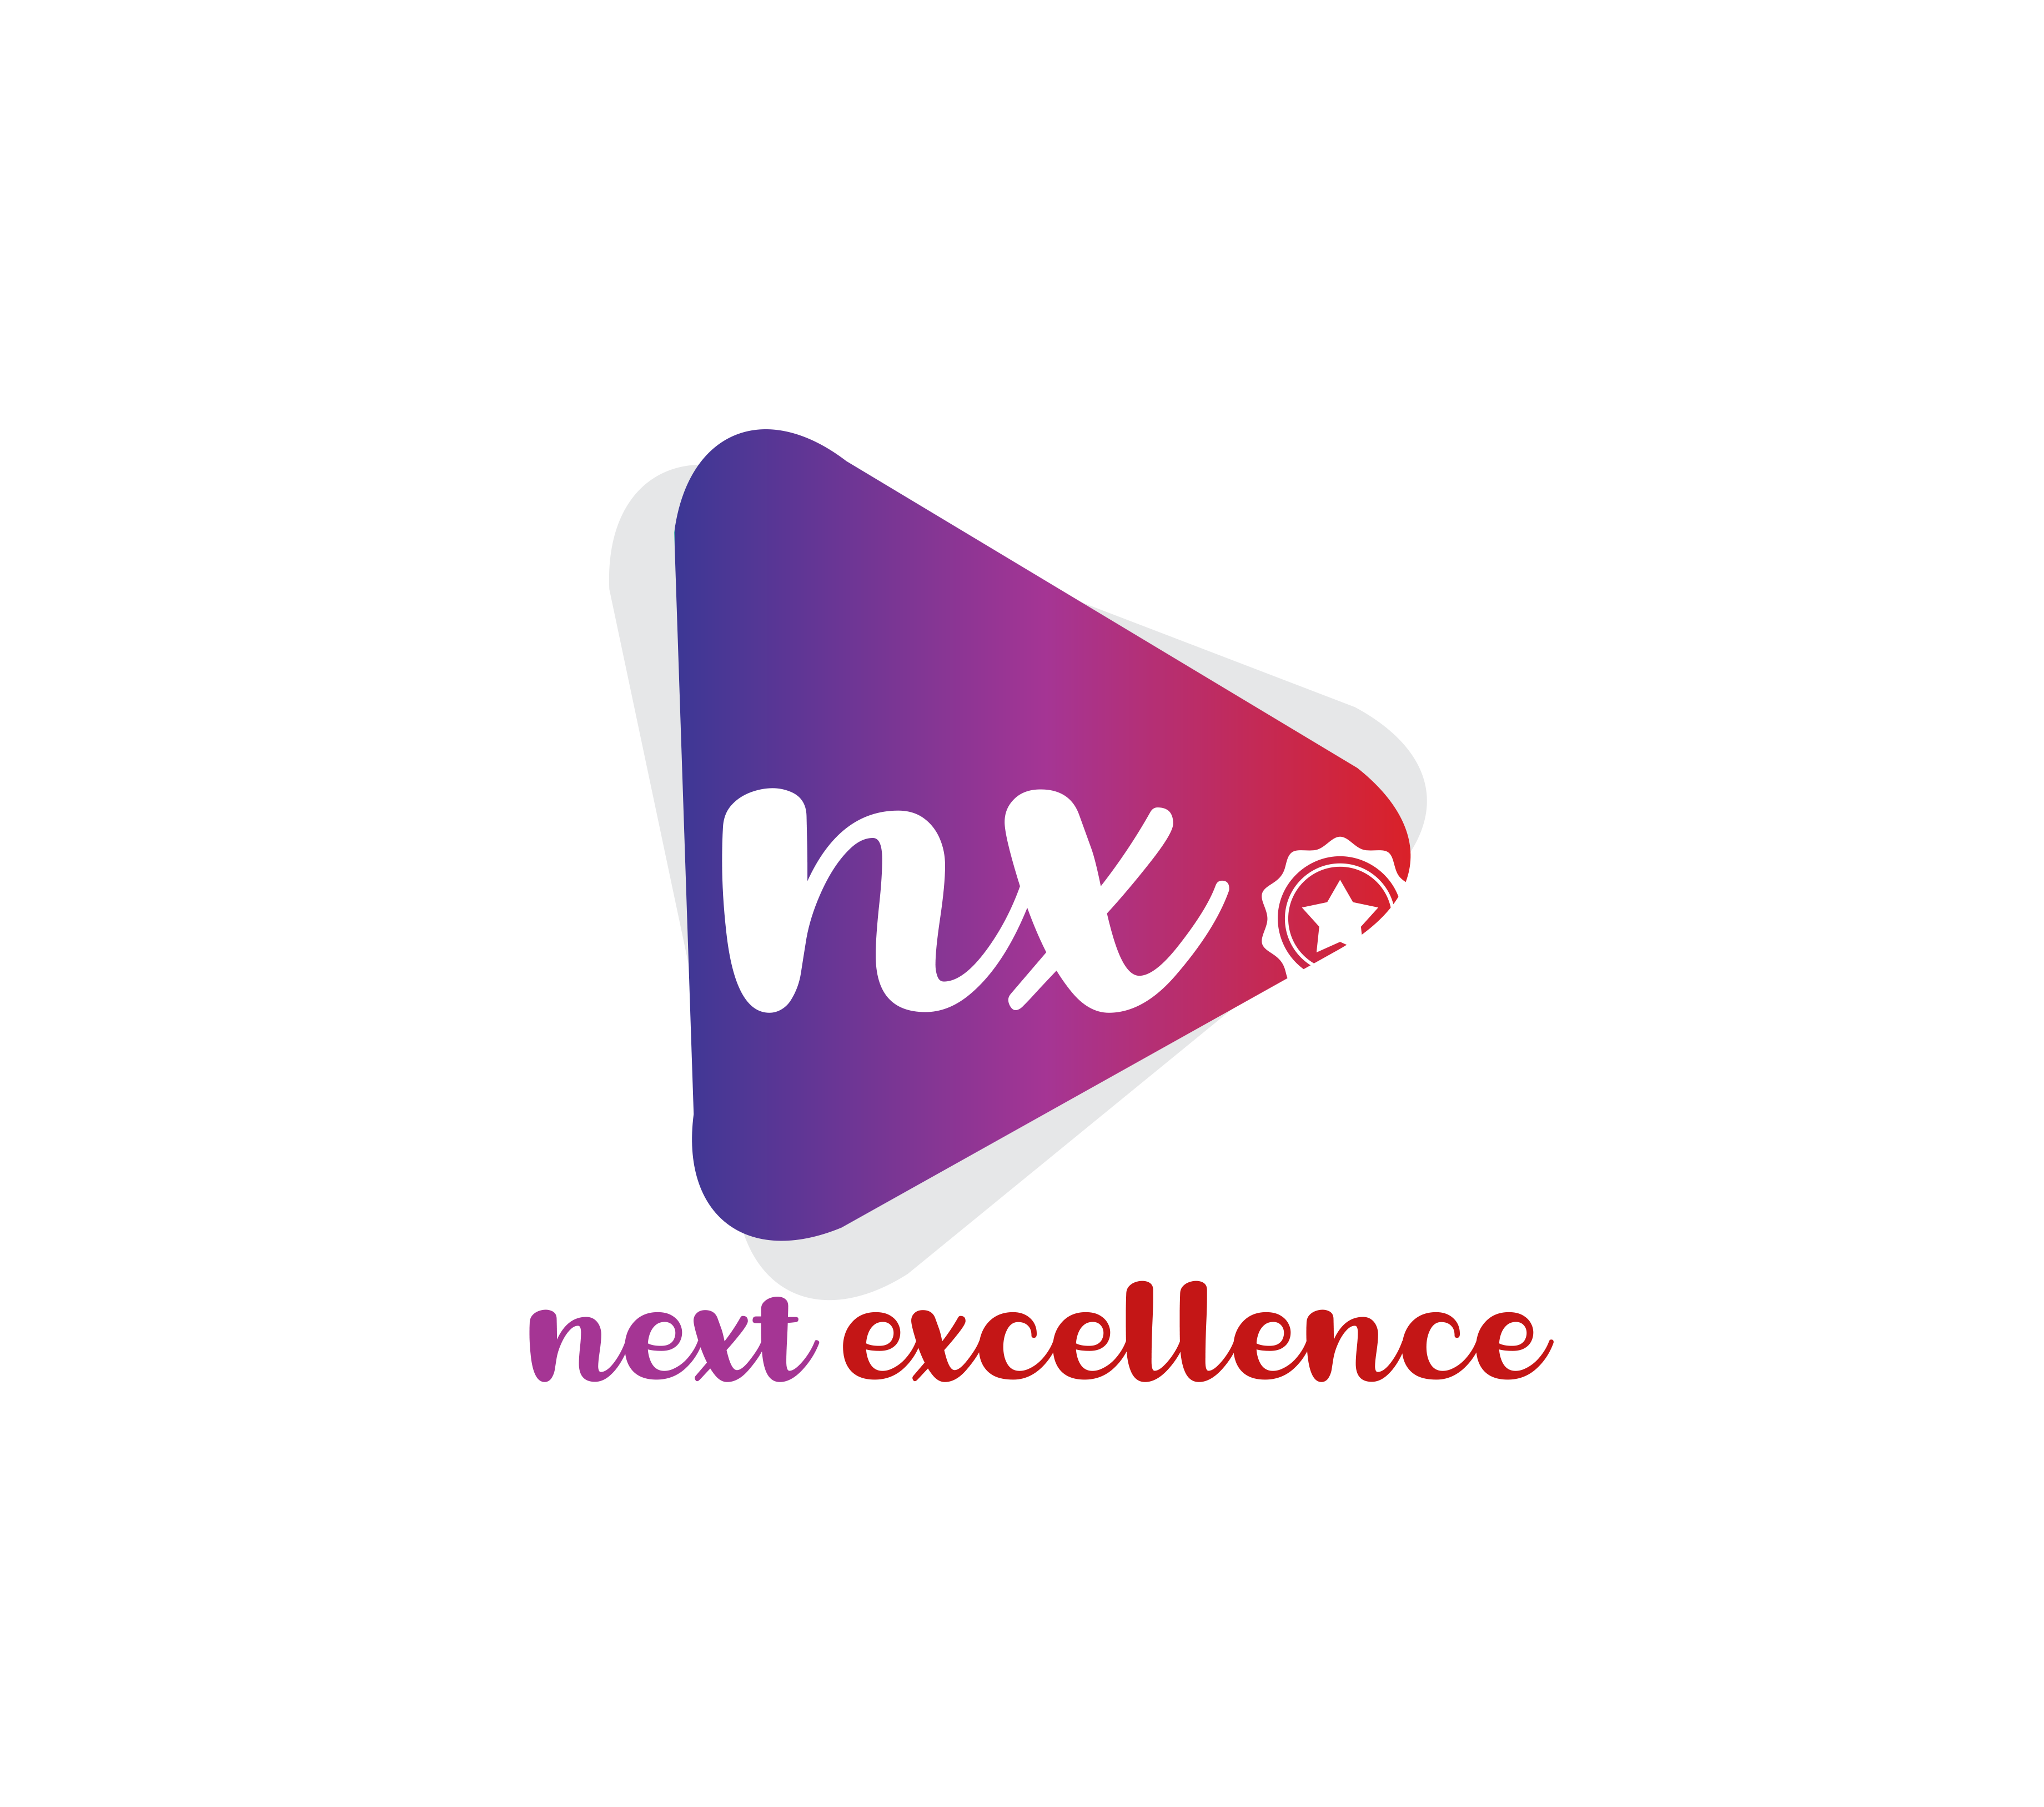 Next Excellence